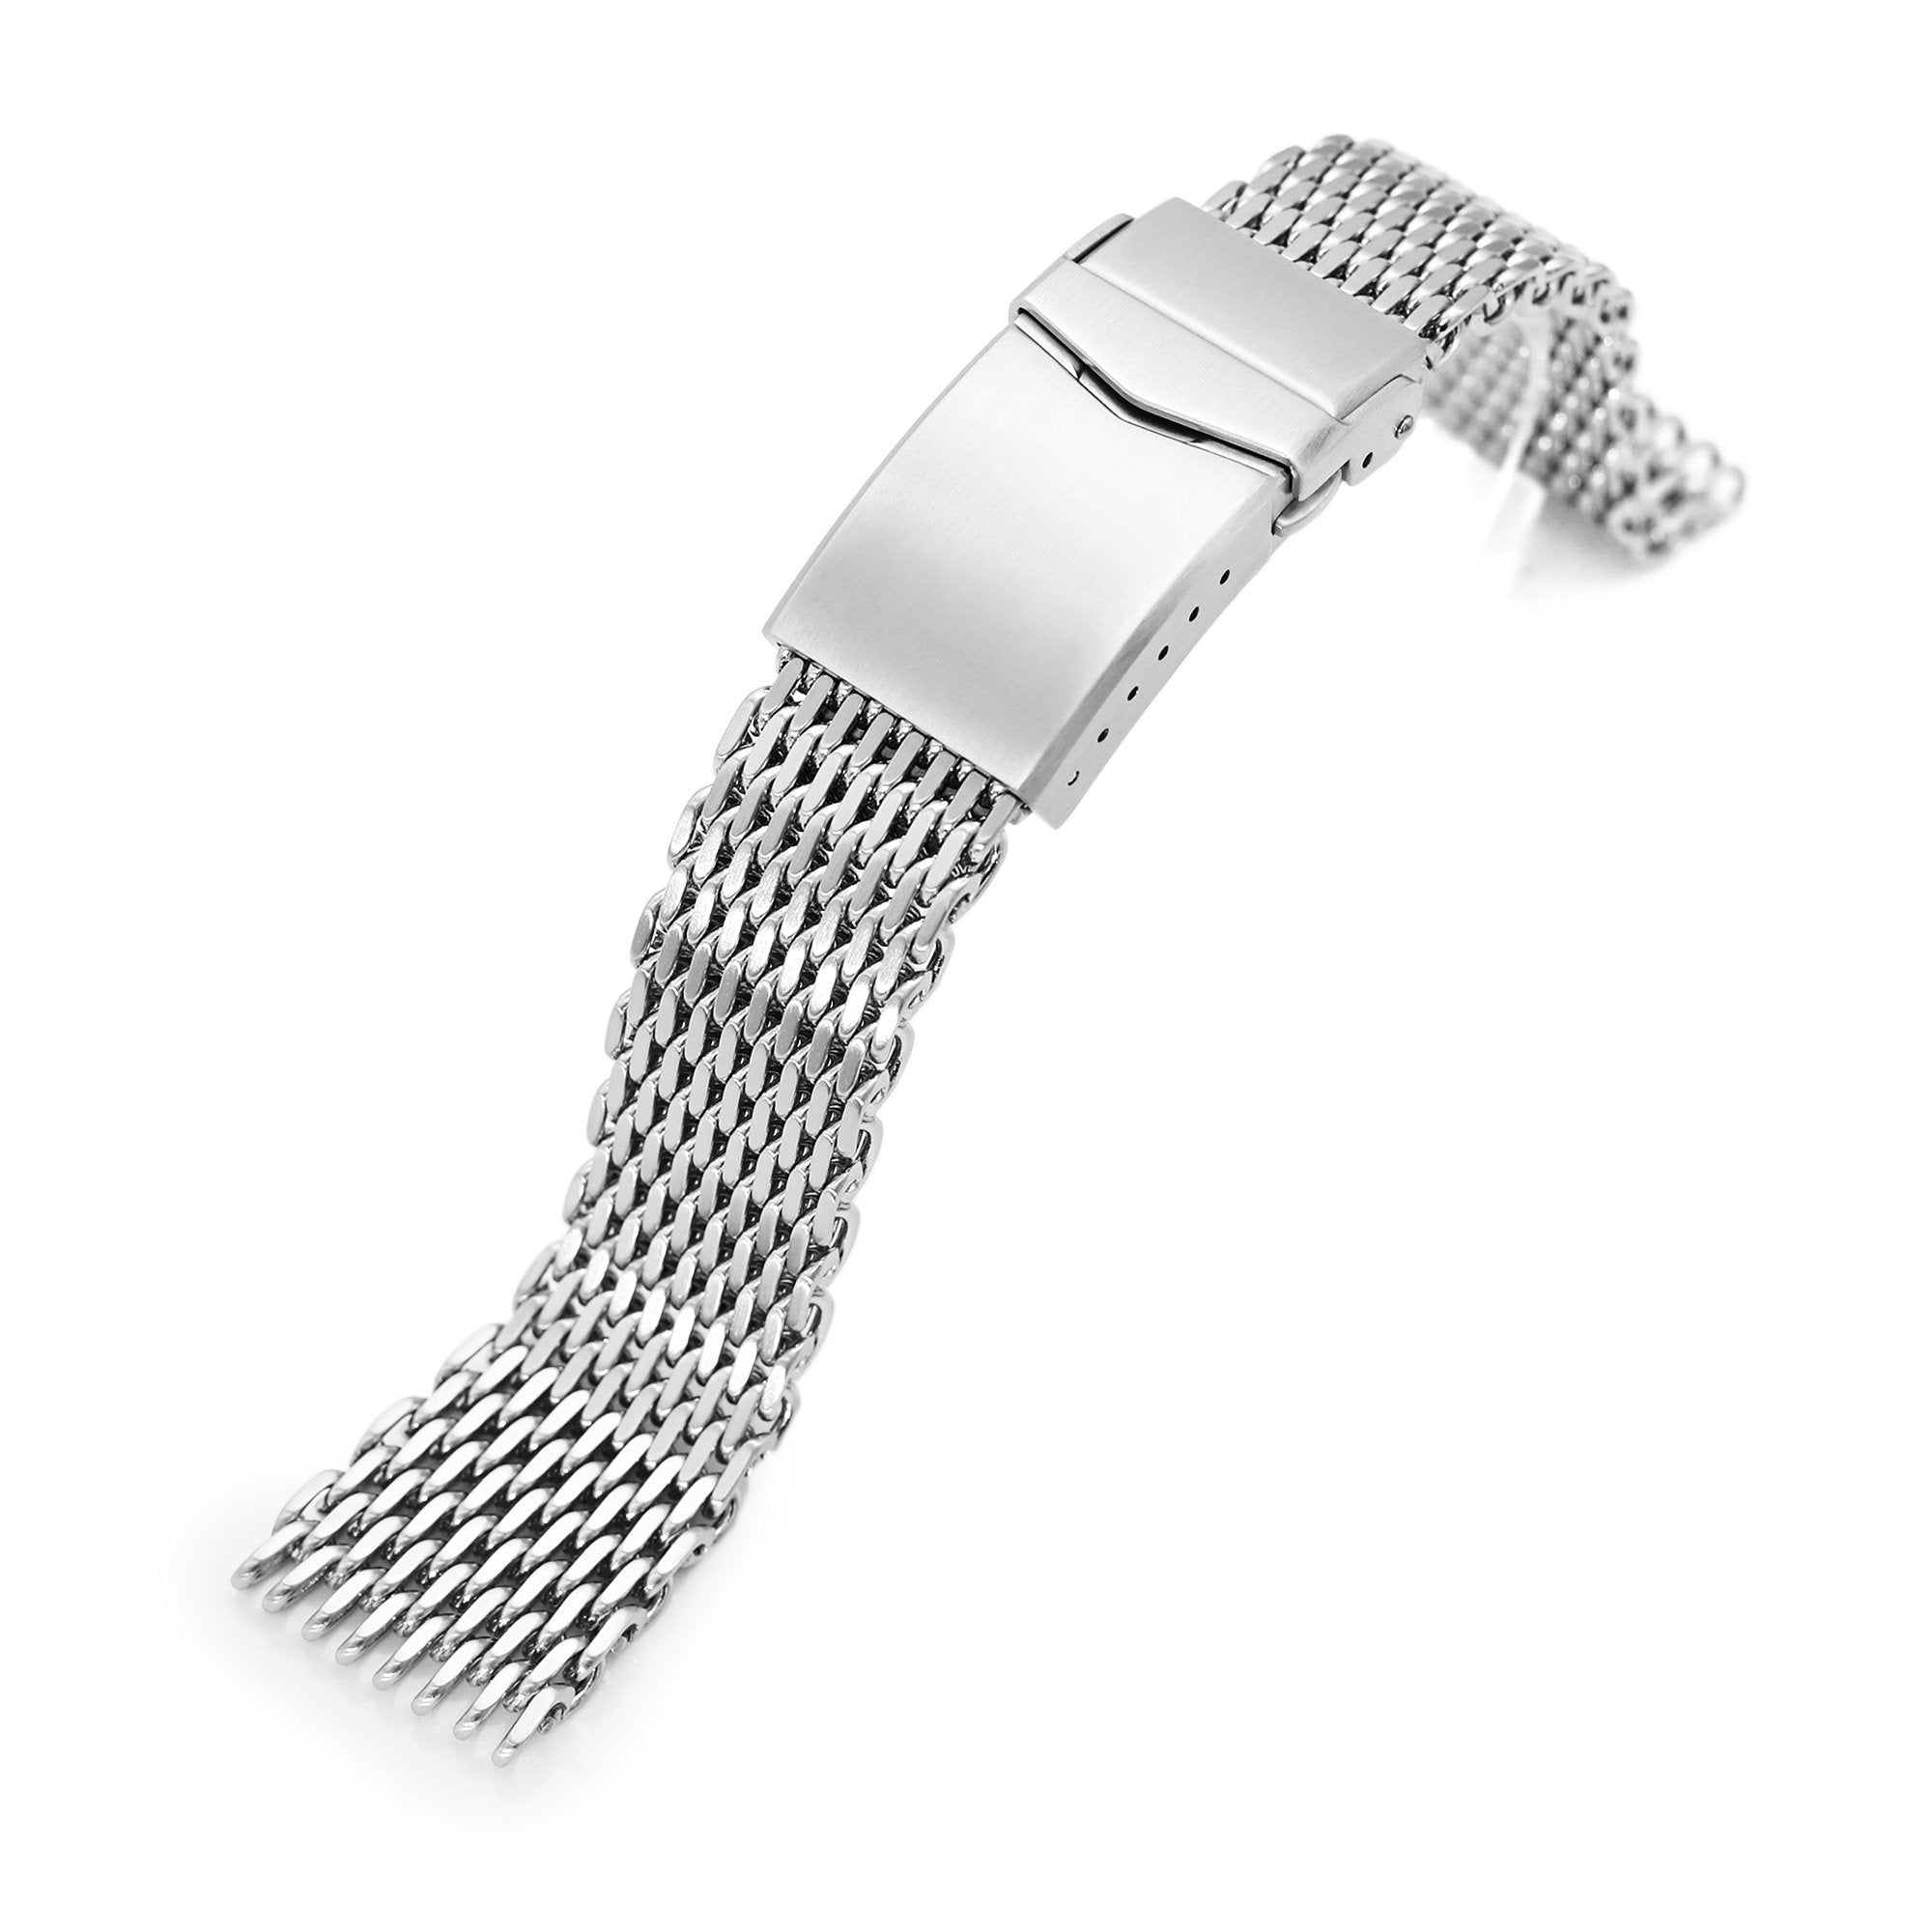 "20mm Tapered ""SHARK"" Mesh Band Stainless Steel Watch Bracelet V-Clasp Polished Strapcode Watch Bands"